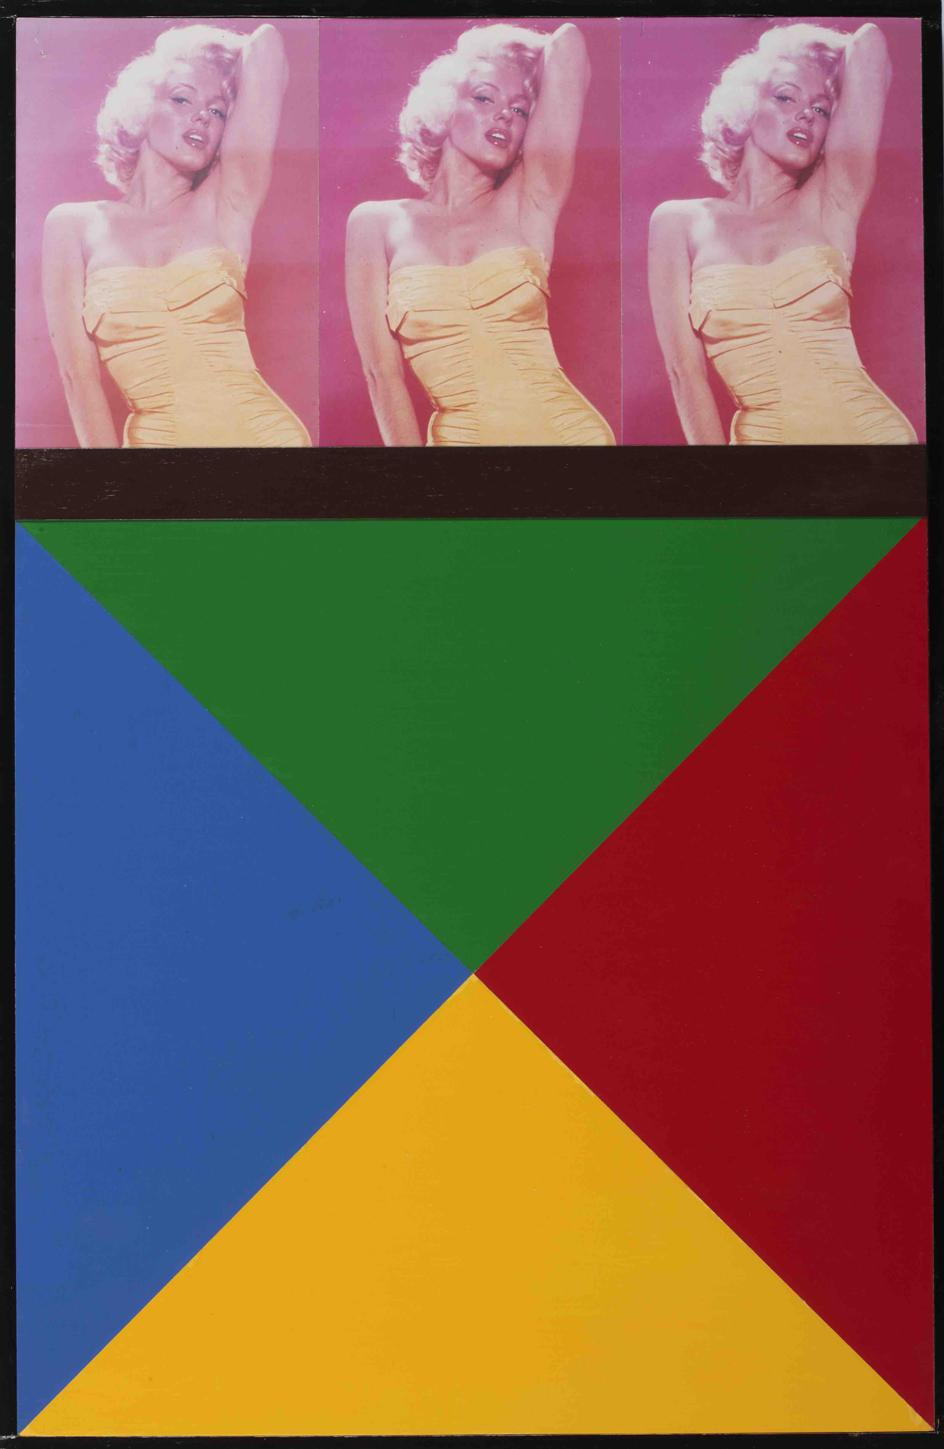 Peter Blake, M, M, 1997, photographs and enamel paint on board